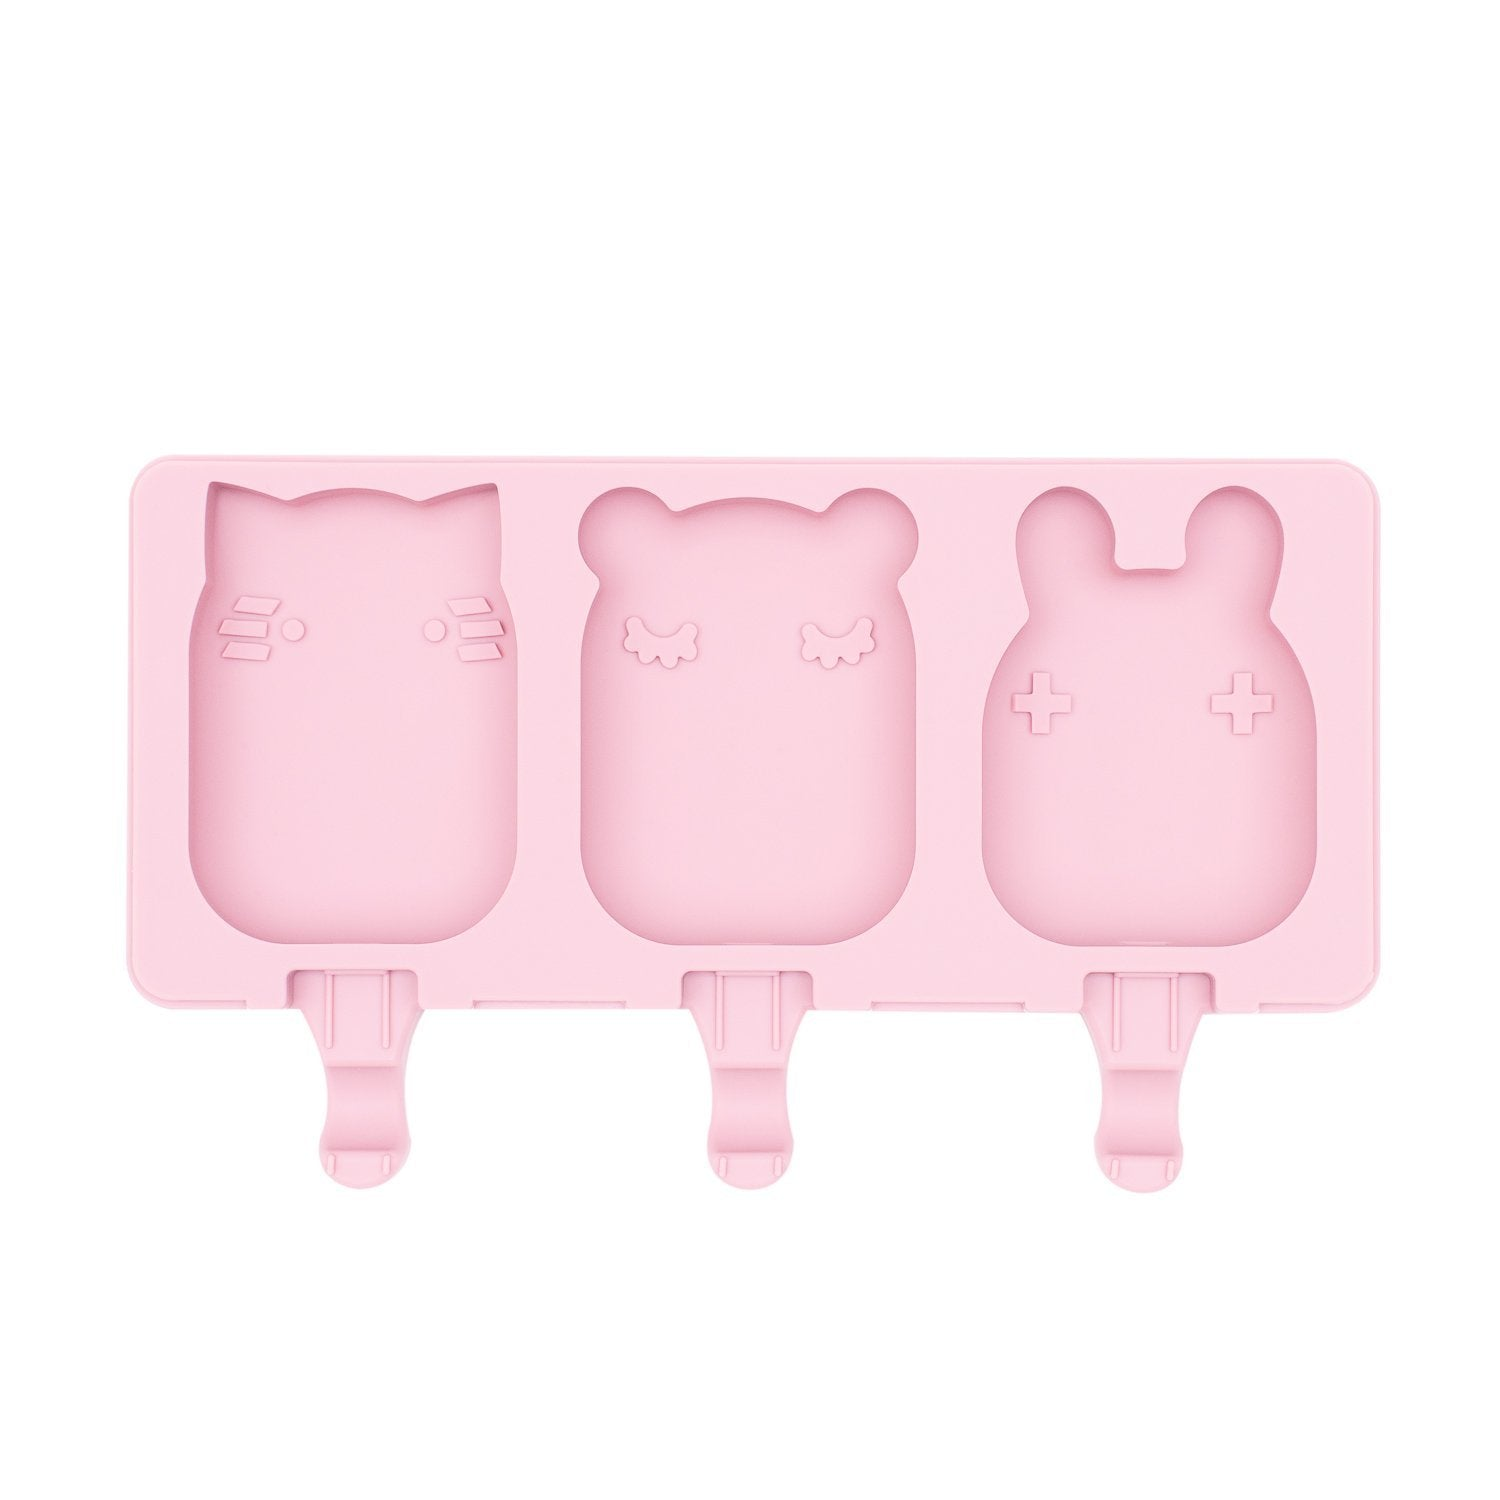 Frosties Icy Pole Mould (Powder Pink)